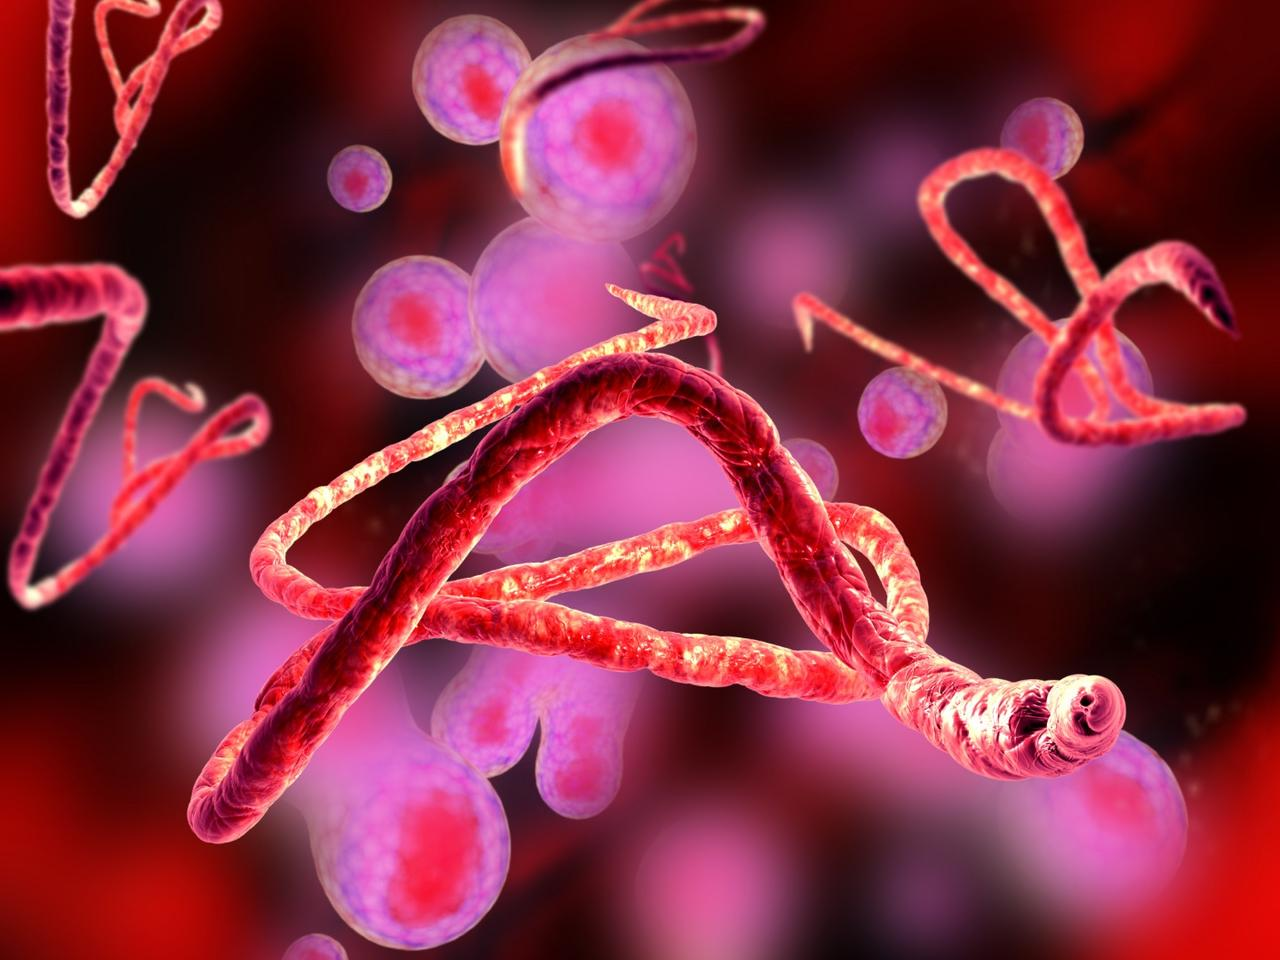 There are currently five known strains of the Ebola virus